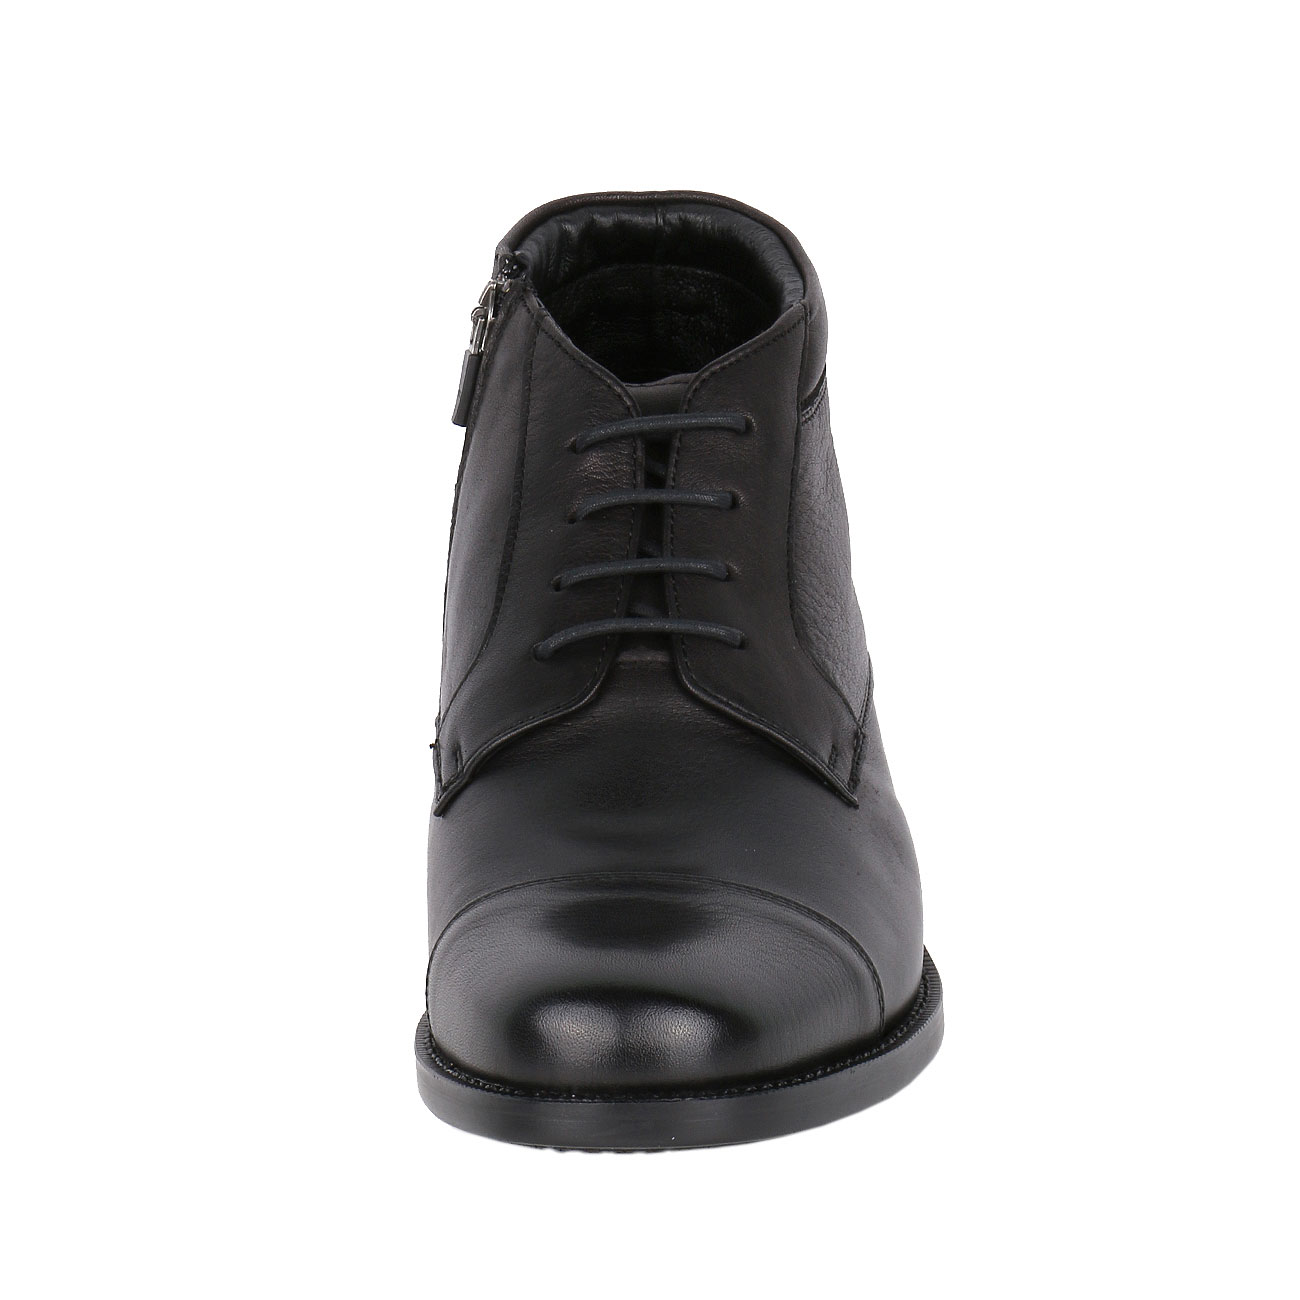 Height Enhancing Men's Leather Chukka Semi Dress Boot